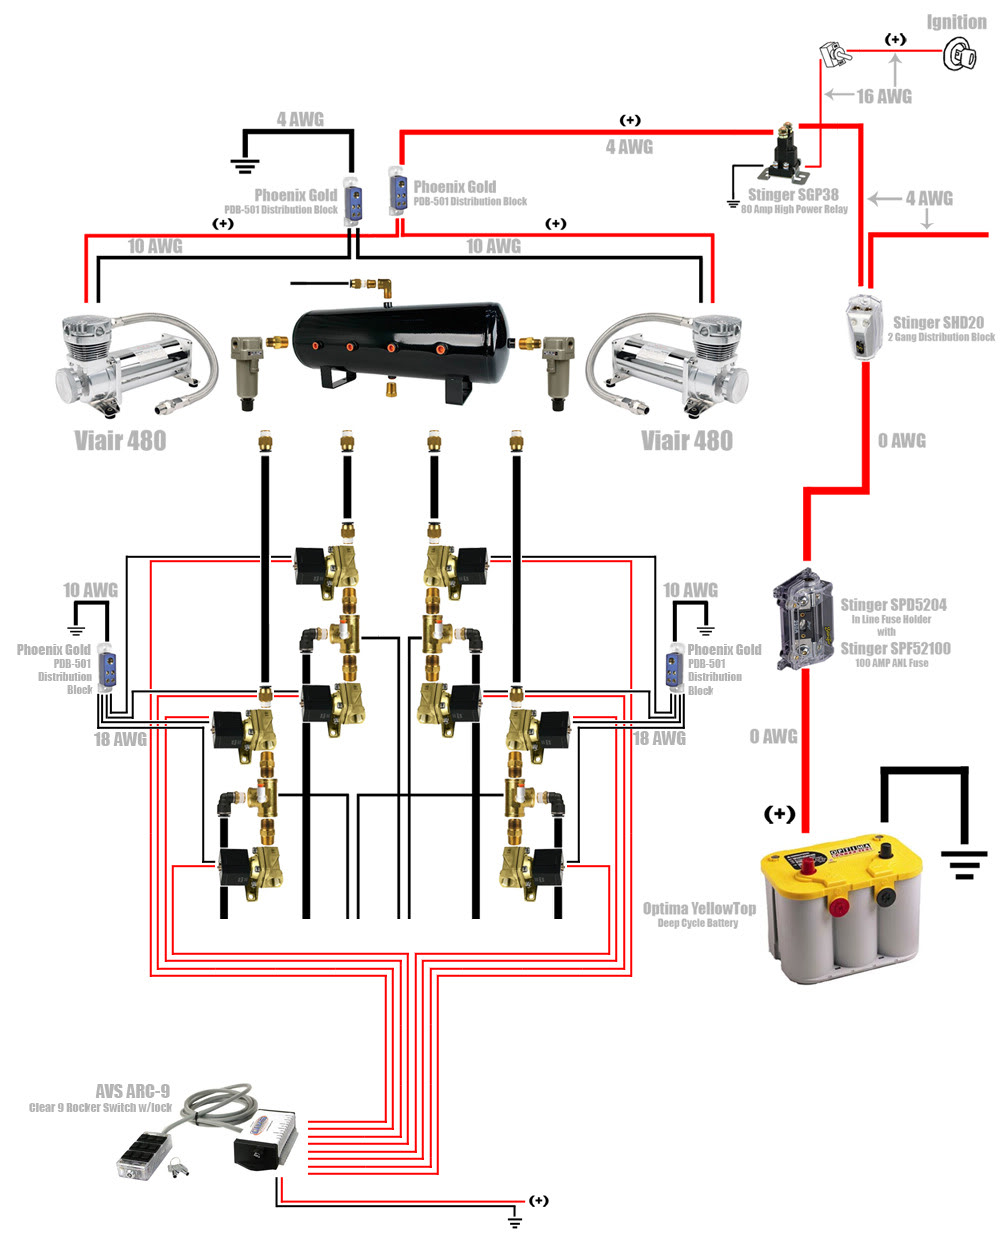 Viair 480c Wiring Diagram Wiring Diagram & Fuse Box \u2022 Wiring Diagram  For Air Conditioning Compressor Wiring Diagram For Viair Compressor